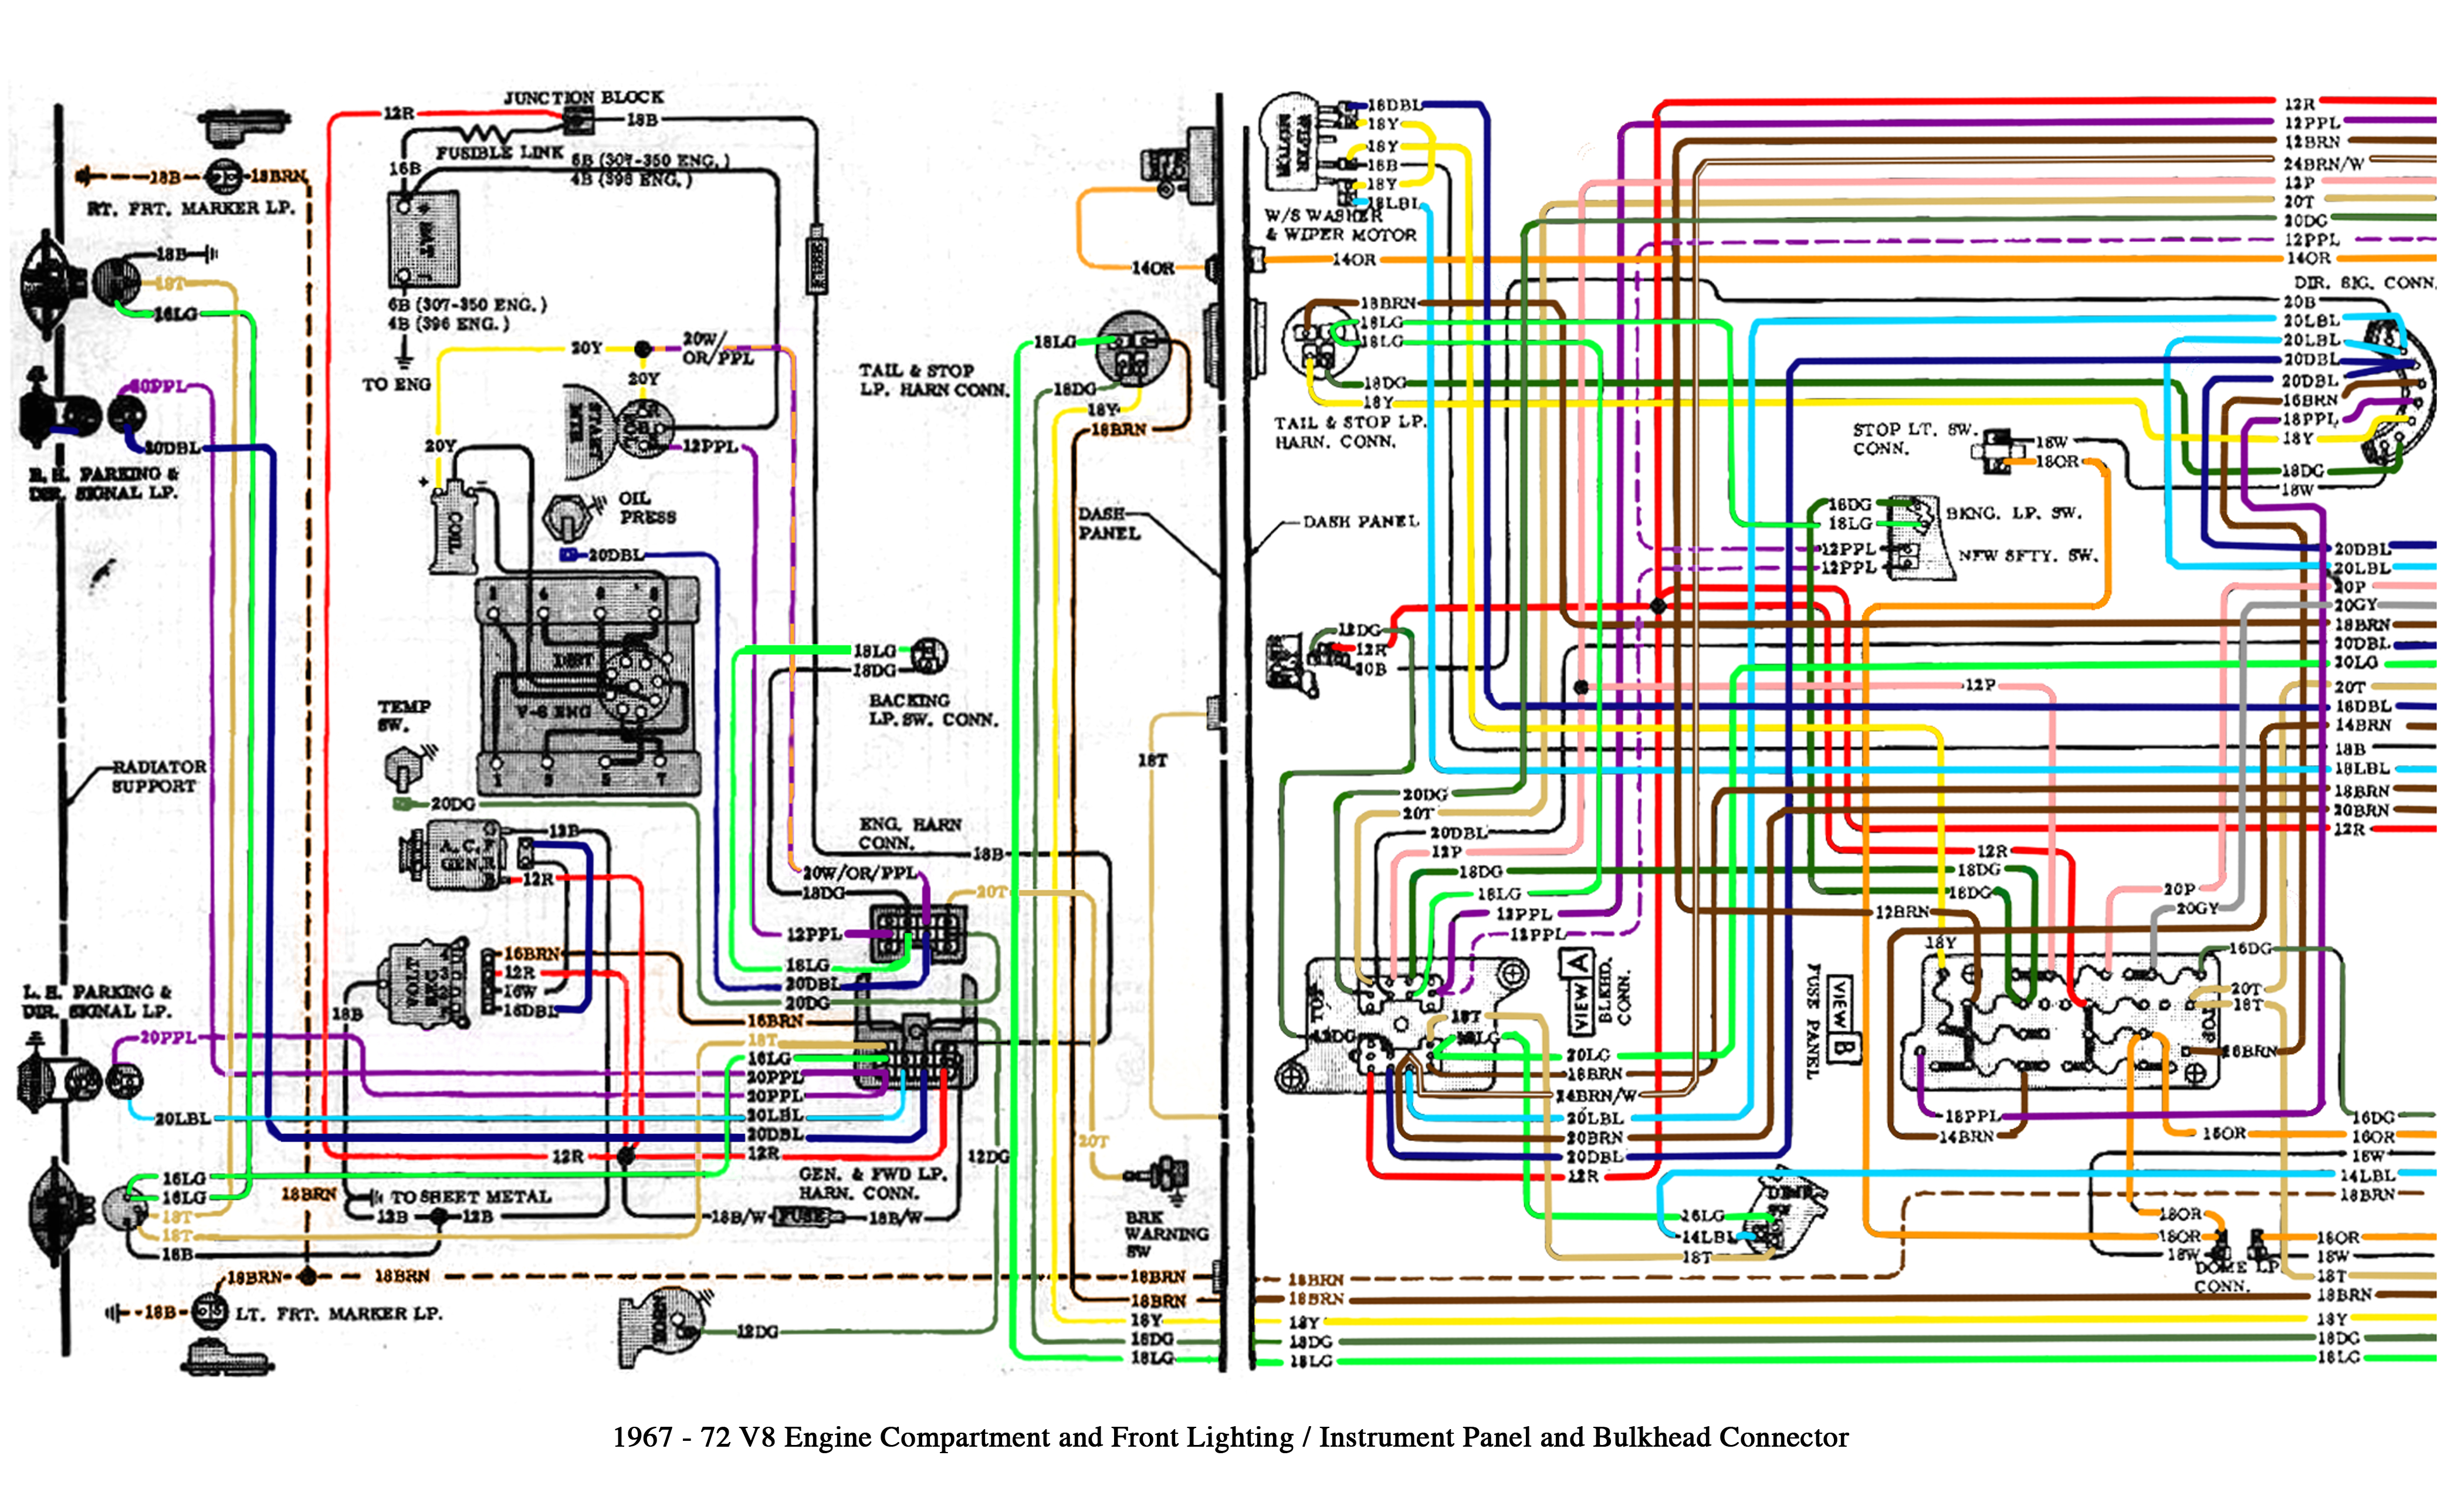 wiring diagram for 1968 chevy truck wiring diagram page1968 chevy truck wiring diagram schematic wiring diagram